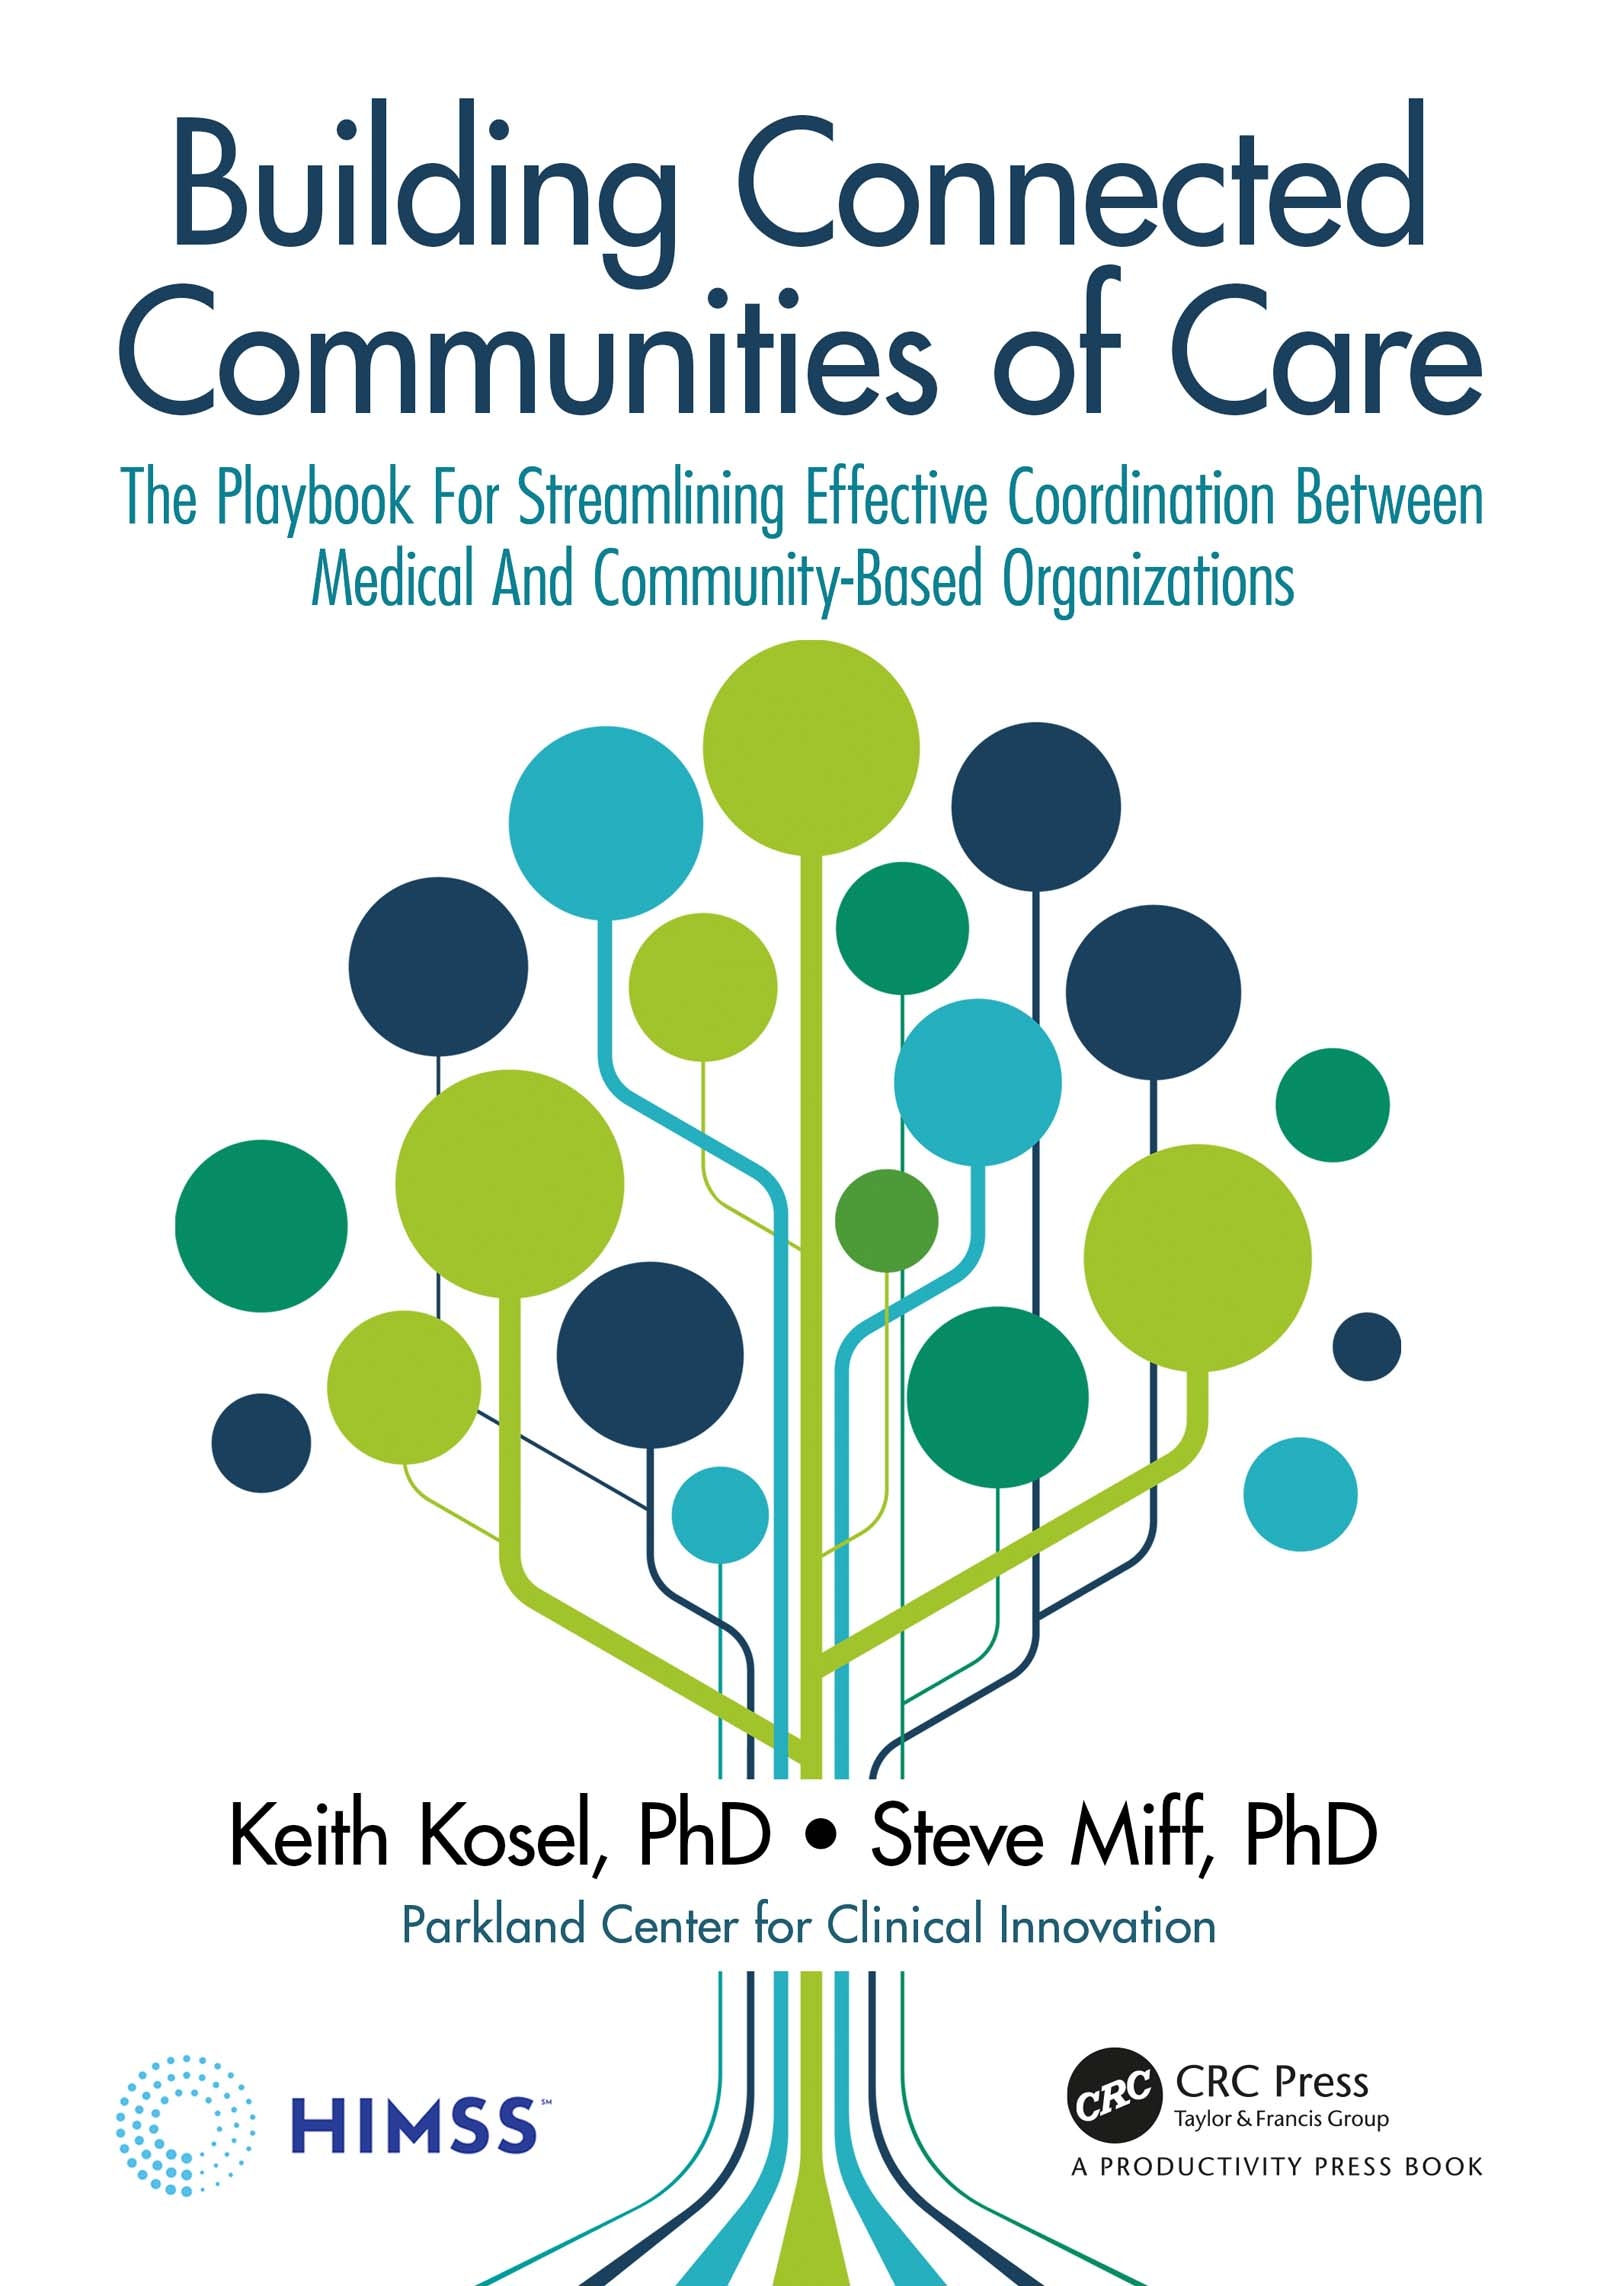 Building Connected Communities of Care is on sale now at HIMSS Publishing and on Amazon. [Photo: via PCCI]